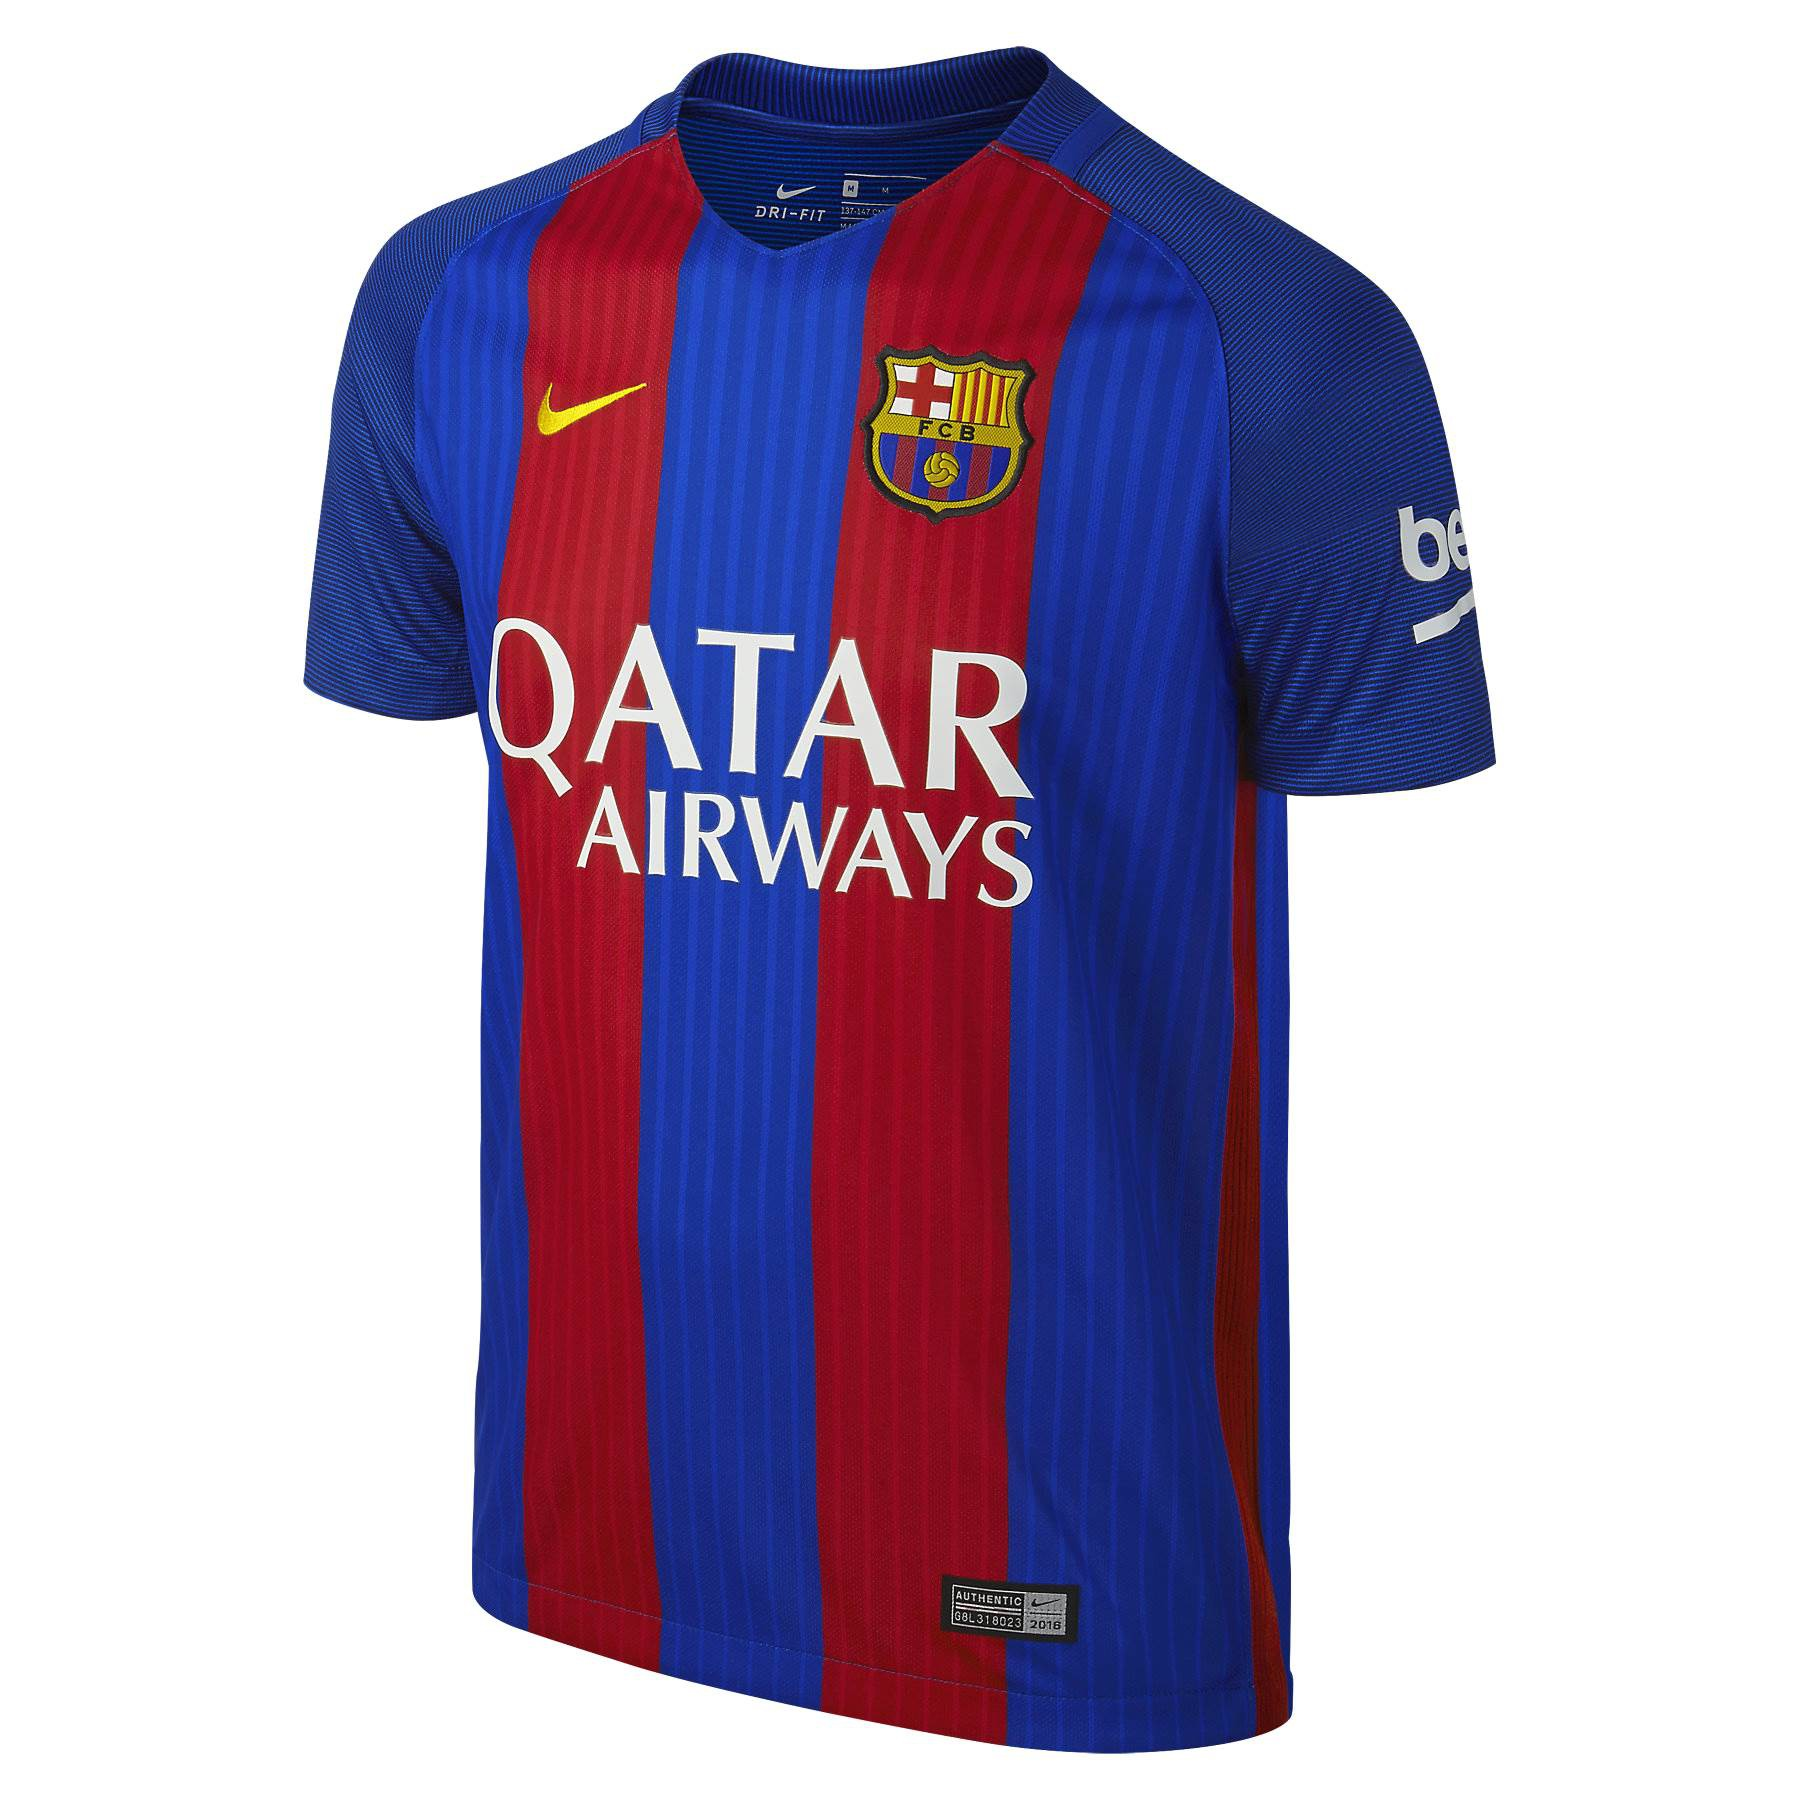 db94606c7 2016-2017 Barcelona Home Nike Shirt (Kids) - with sponsor